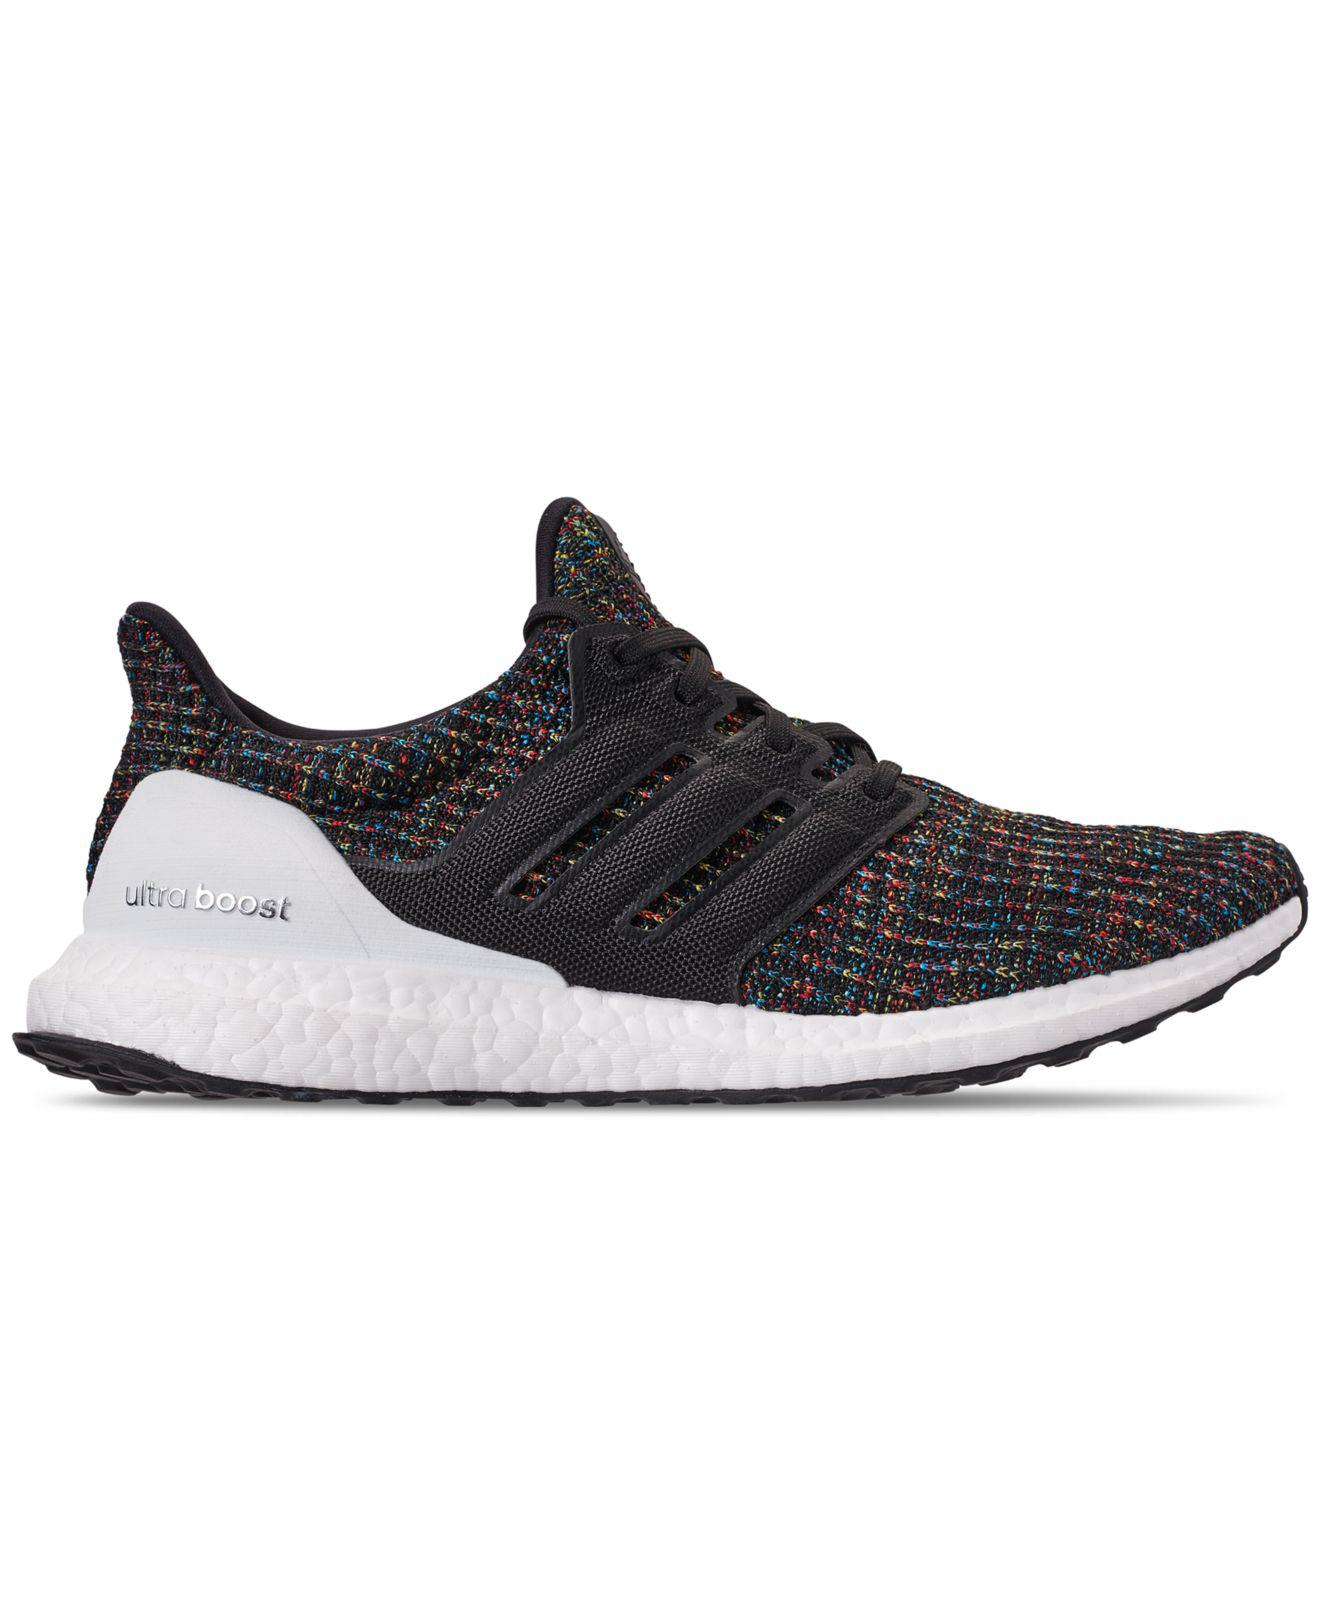 11b1627a3 Lyst - adidas Men s Ultraboost Knit Low-top Sneakers in Black for Men - Save  20%